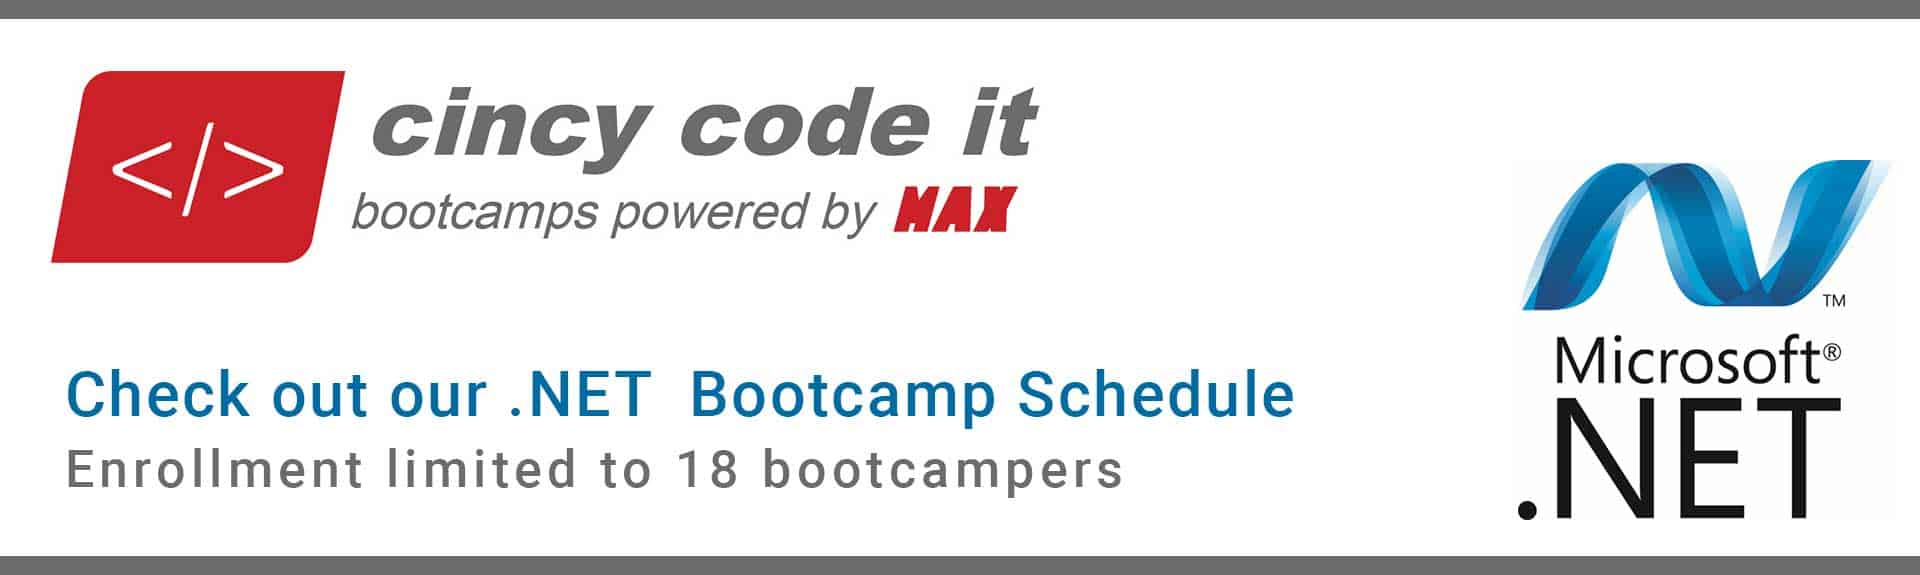 Java Coding Bootcamp and .NET Coding Bootcamp - MAX Technical Training_Cincy Code IT